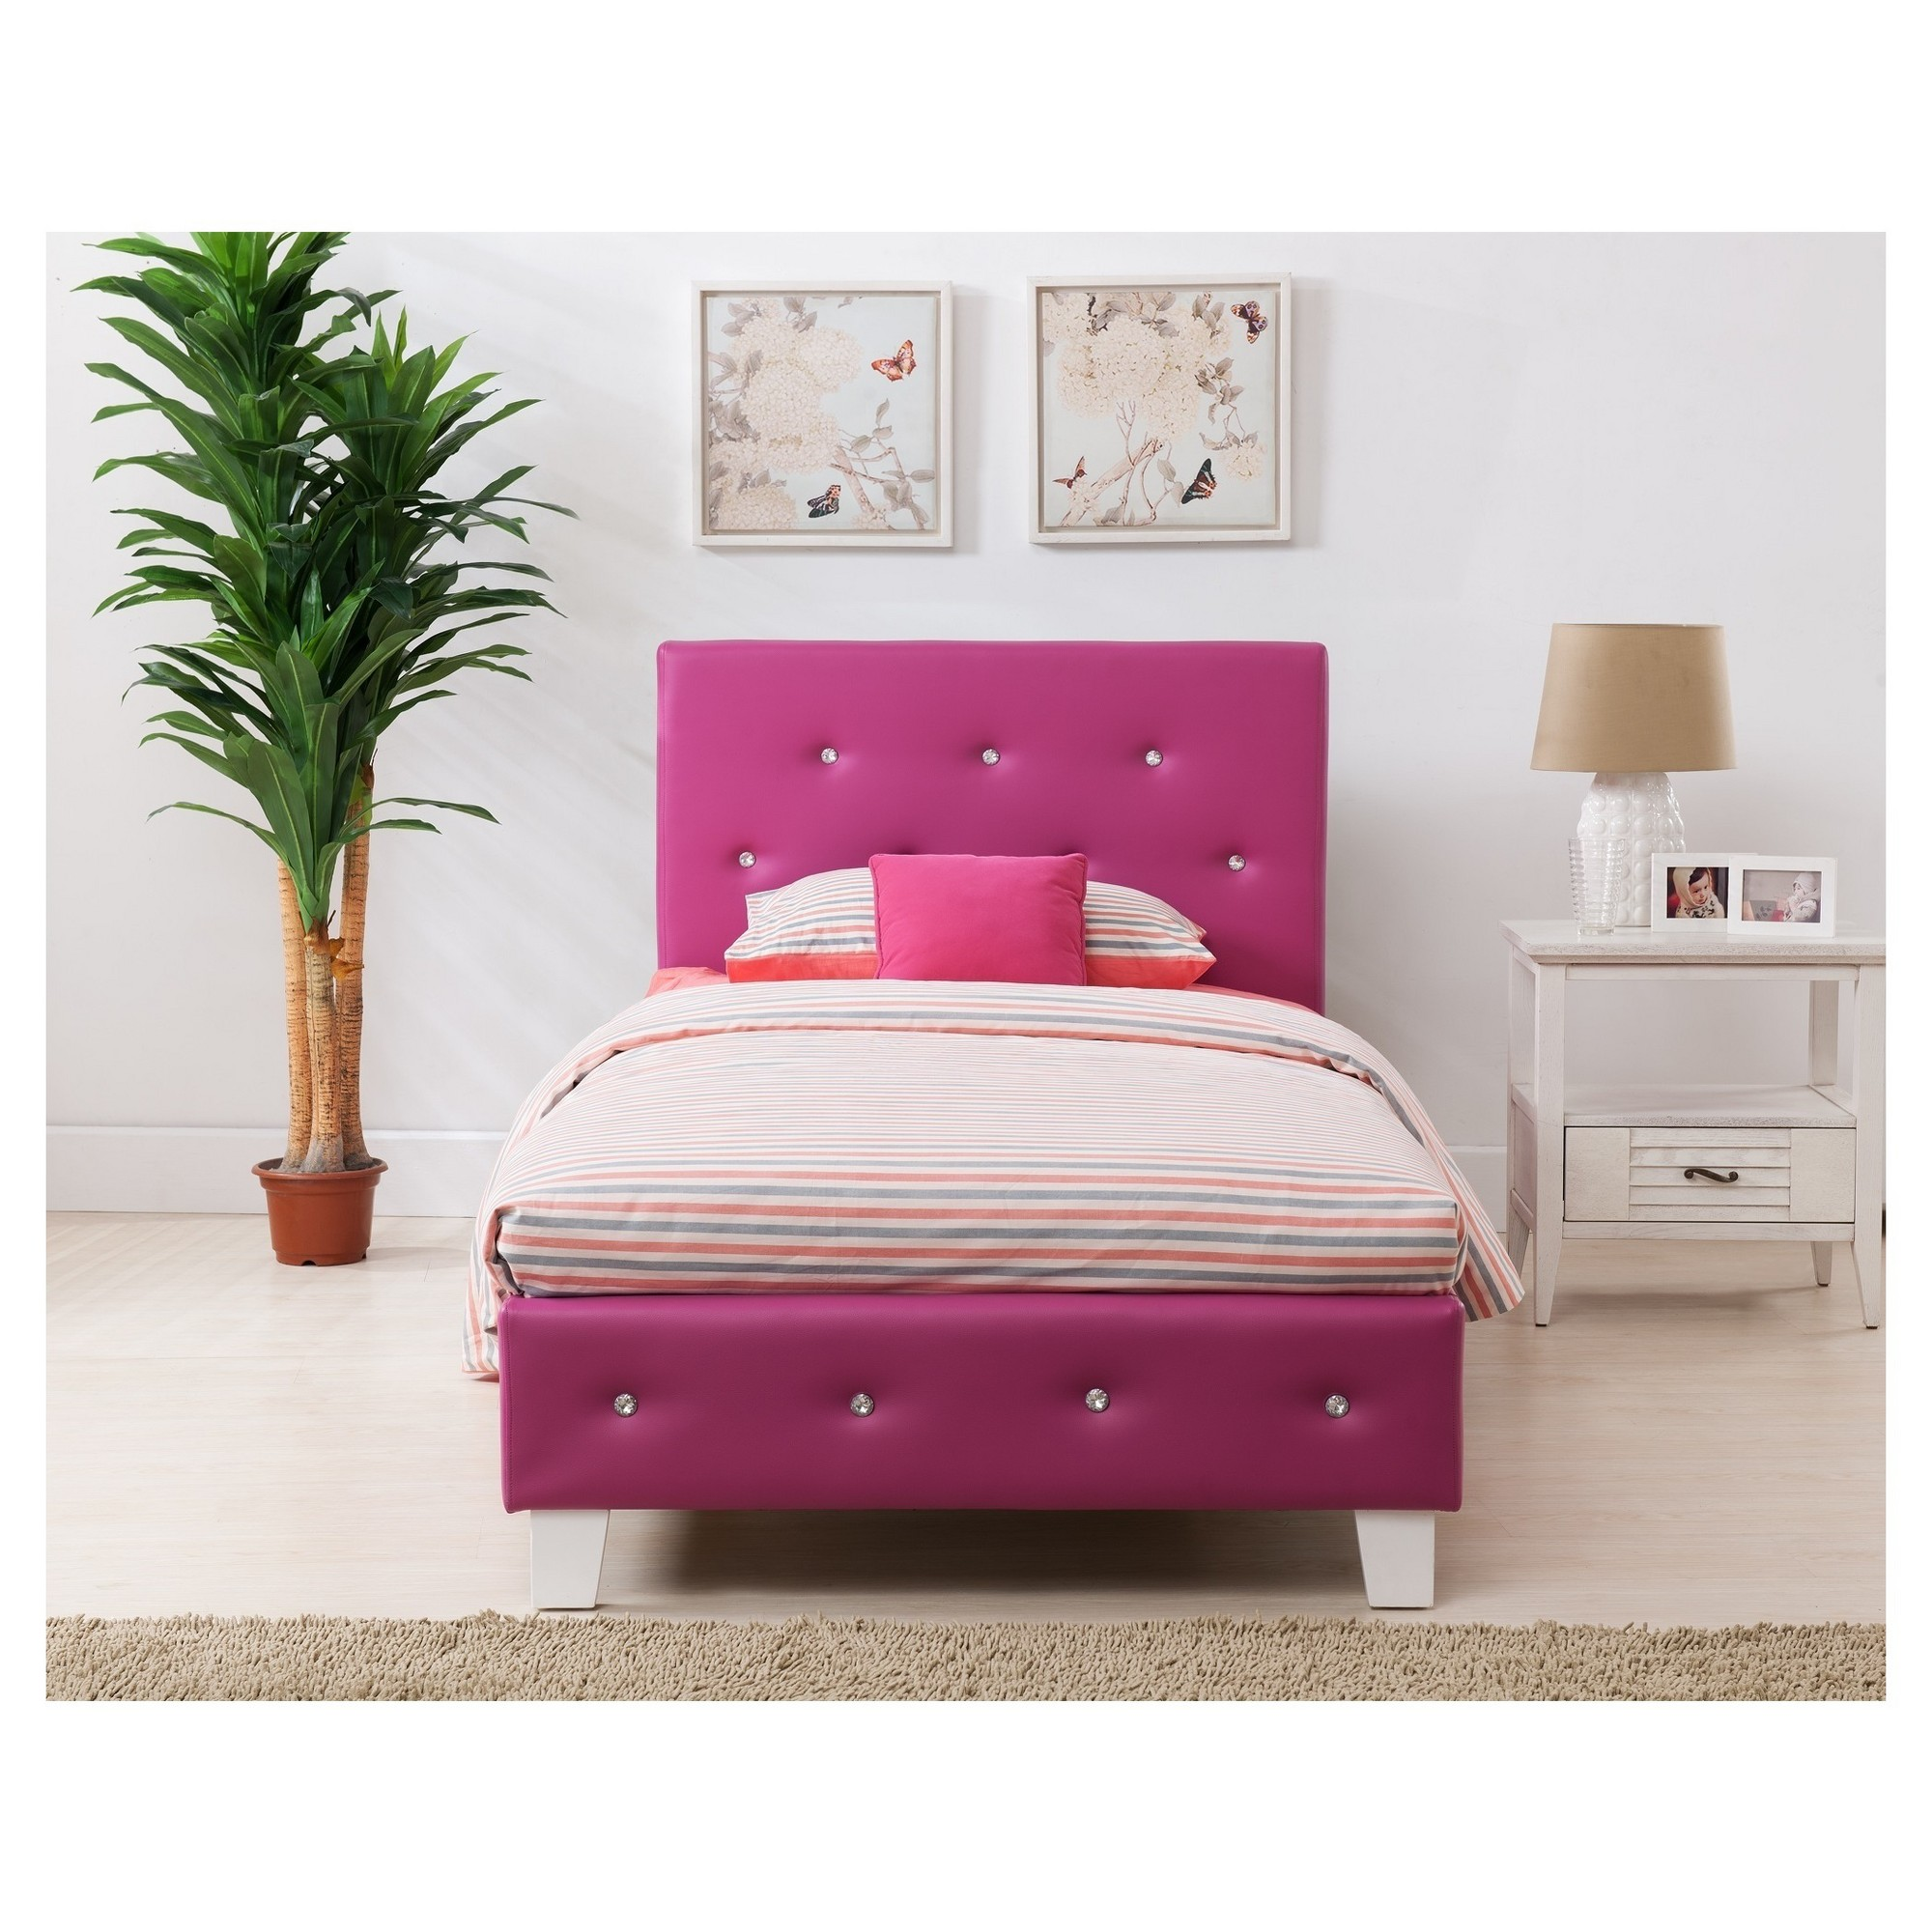 Pin by Ed's Discount Furniture on Kids Furniture